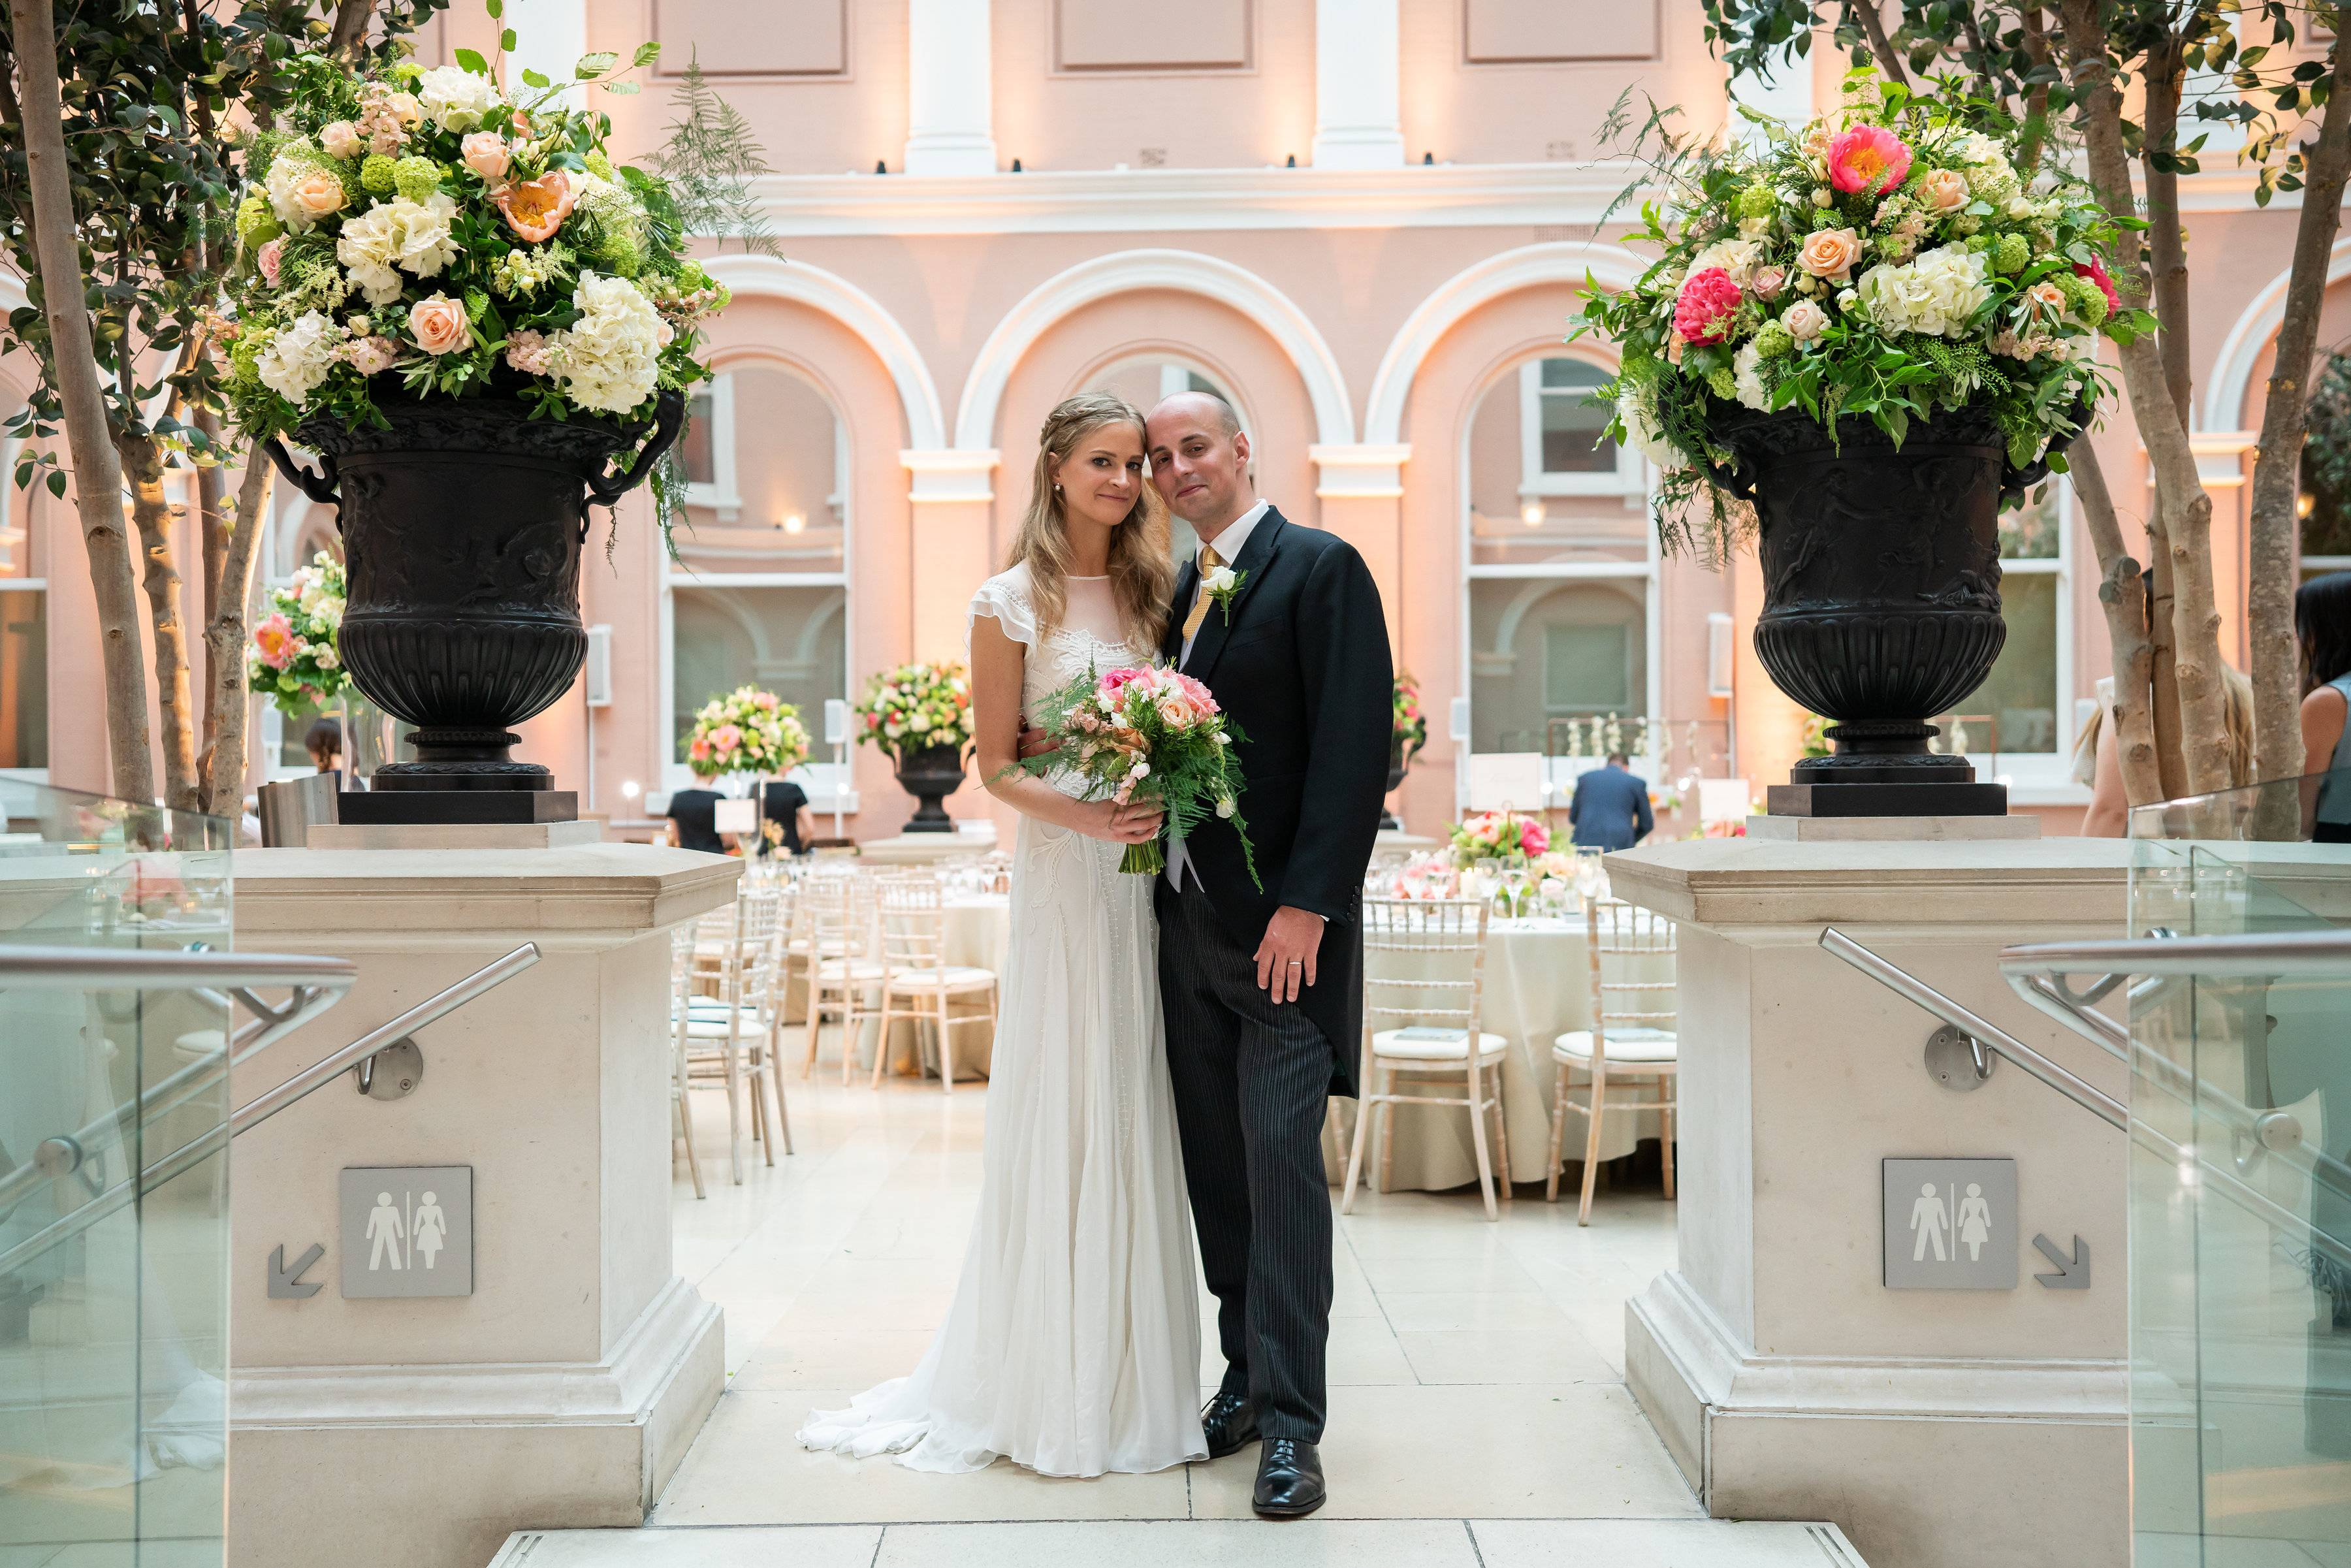 London Wedding planners, Wallace Collection Courtyard Wedding, Wedding in the Courtyard at the Wallace Collection, Temperley Wedding Dress, Floral urn displays